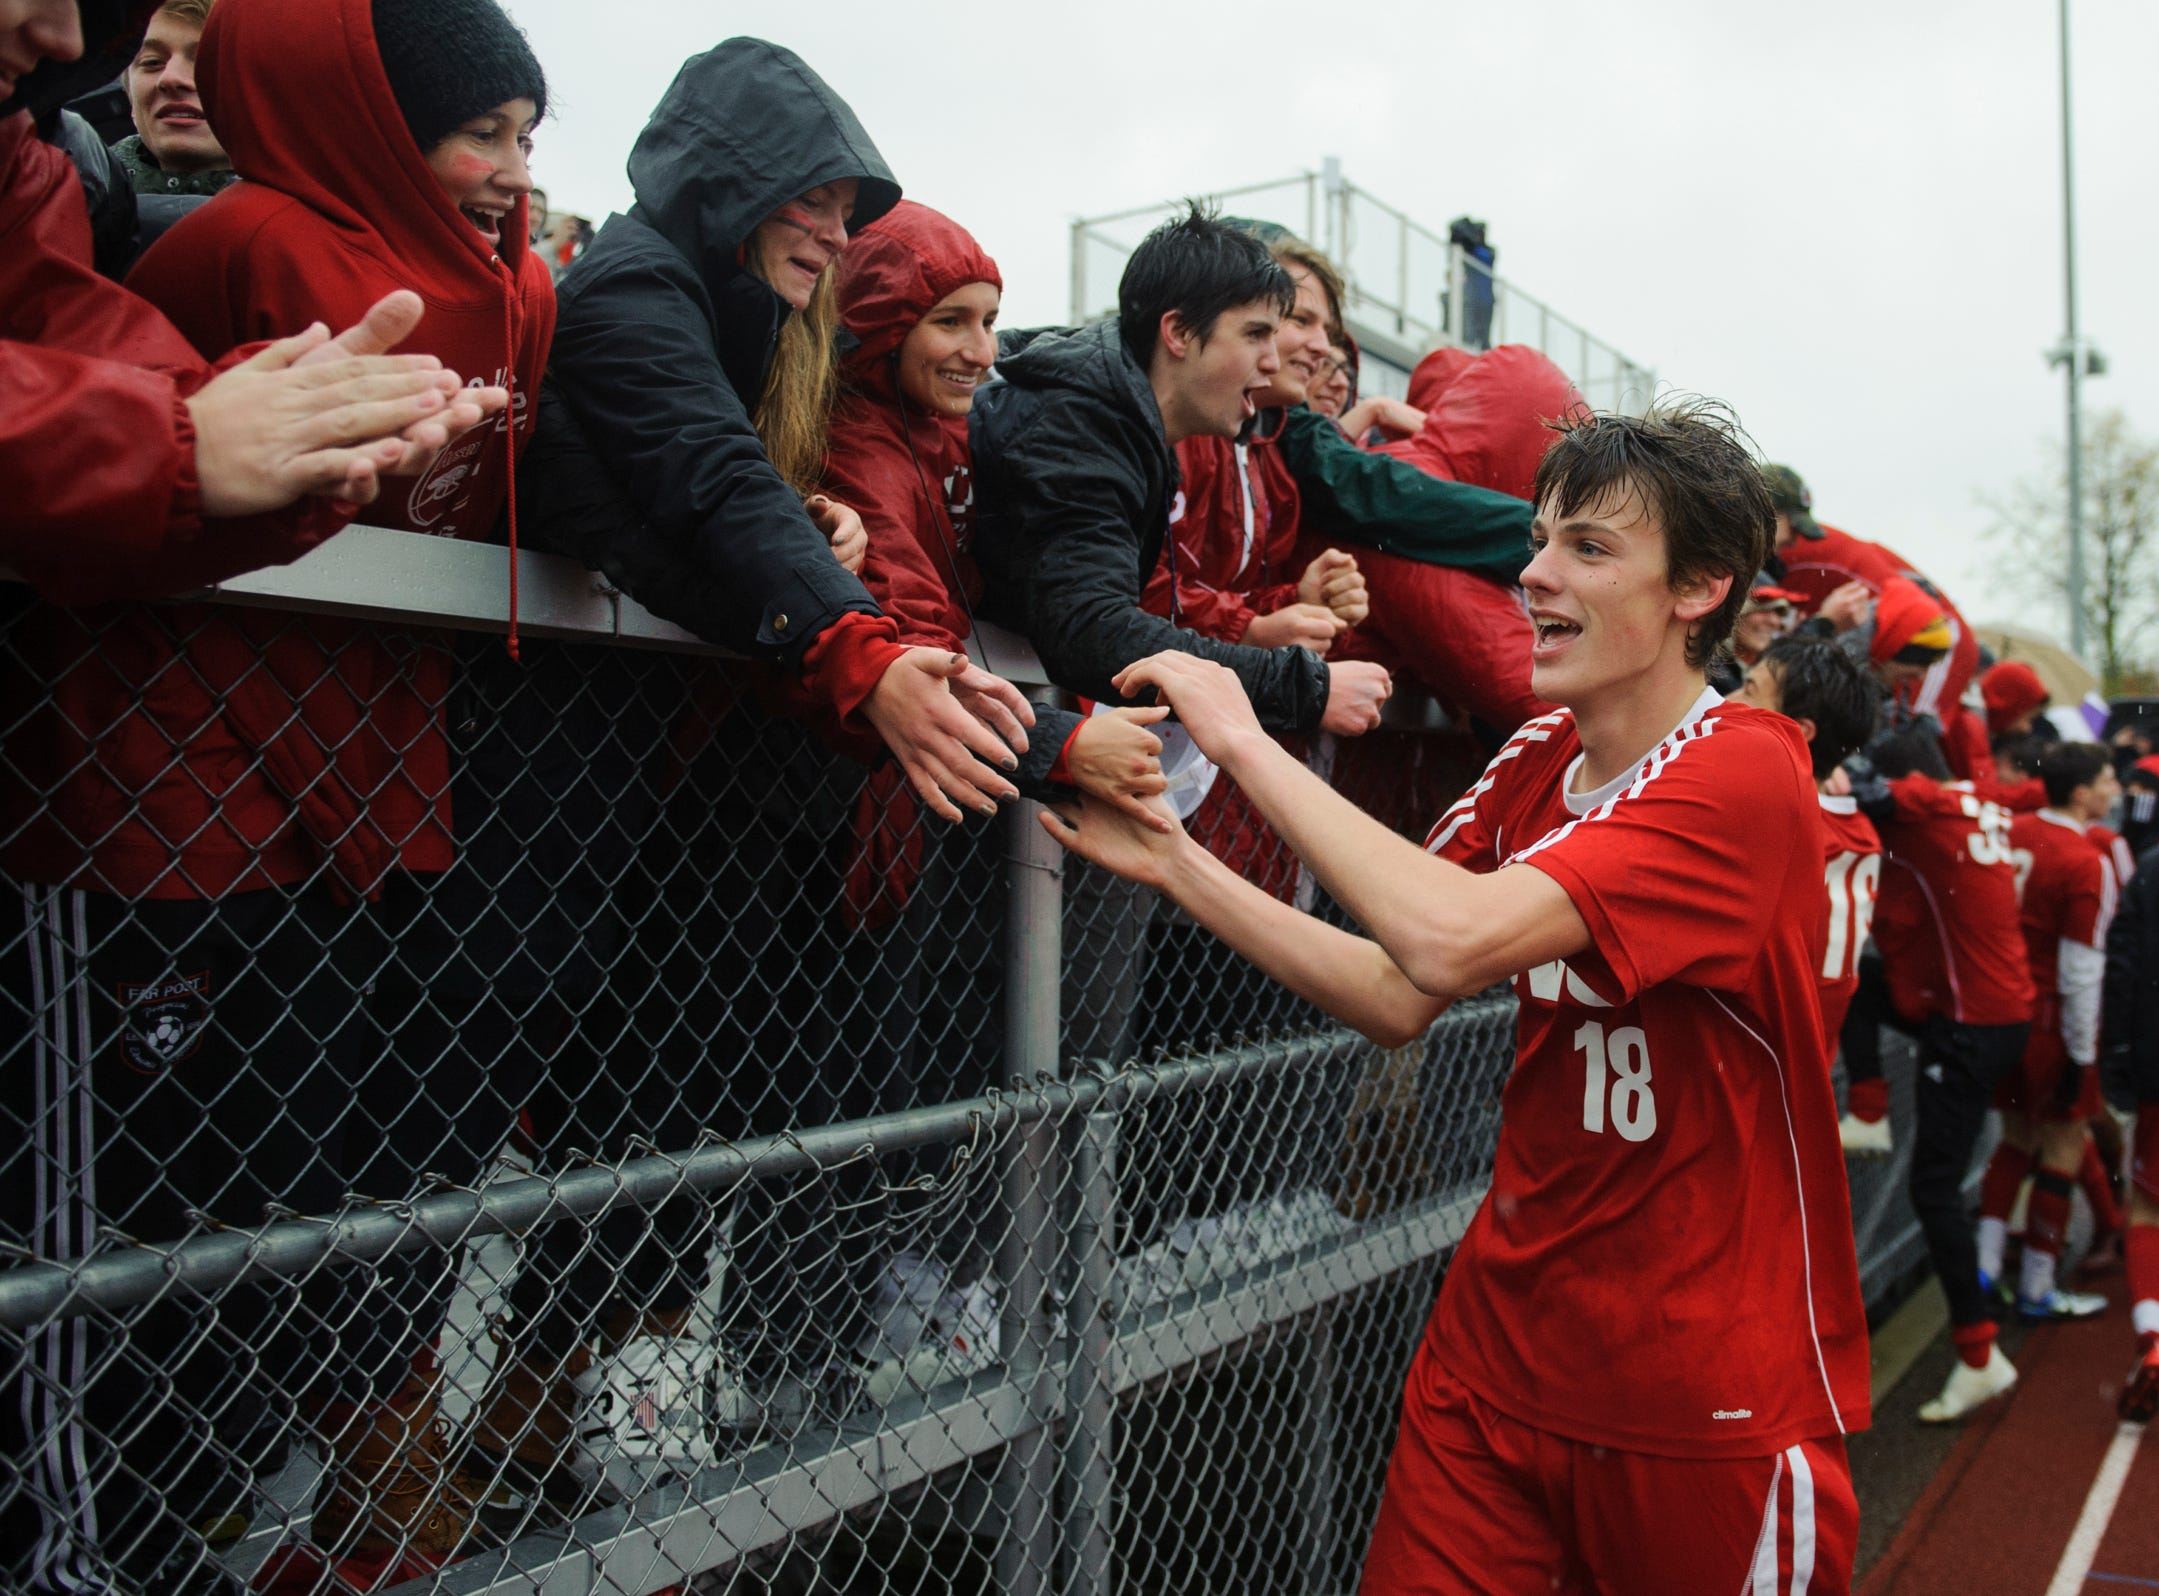 CVU's Benjamin Ross (18) high fives fans in celebration during the Division I boys soccer championship game between the St. Johnsbury Hilltoppers and the Champlain Valley Union Redhawks at Buck Hard Field on Saturday morning November 3, 2018 in Burlington.